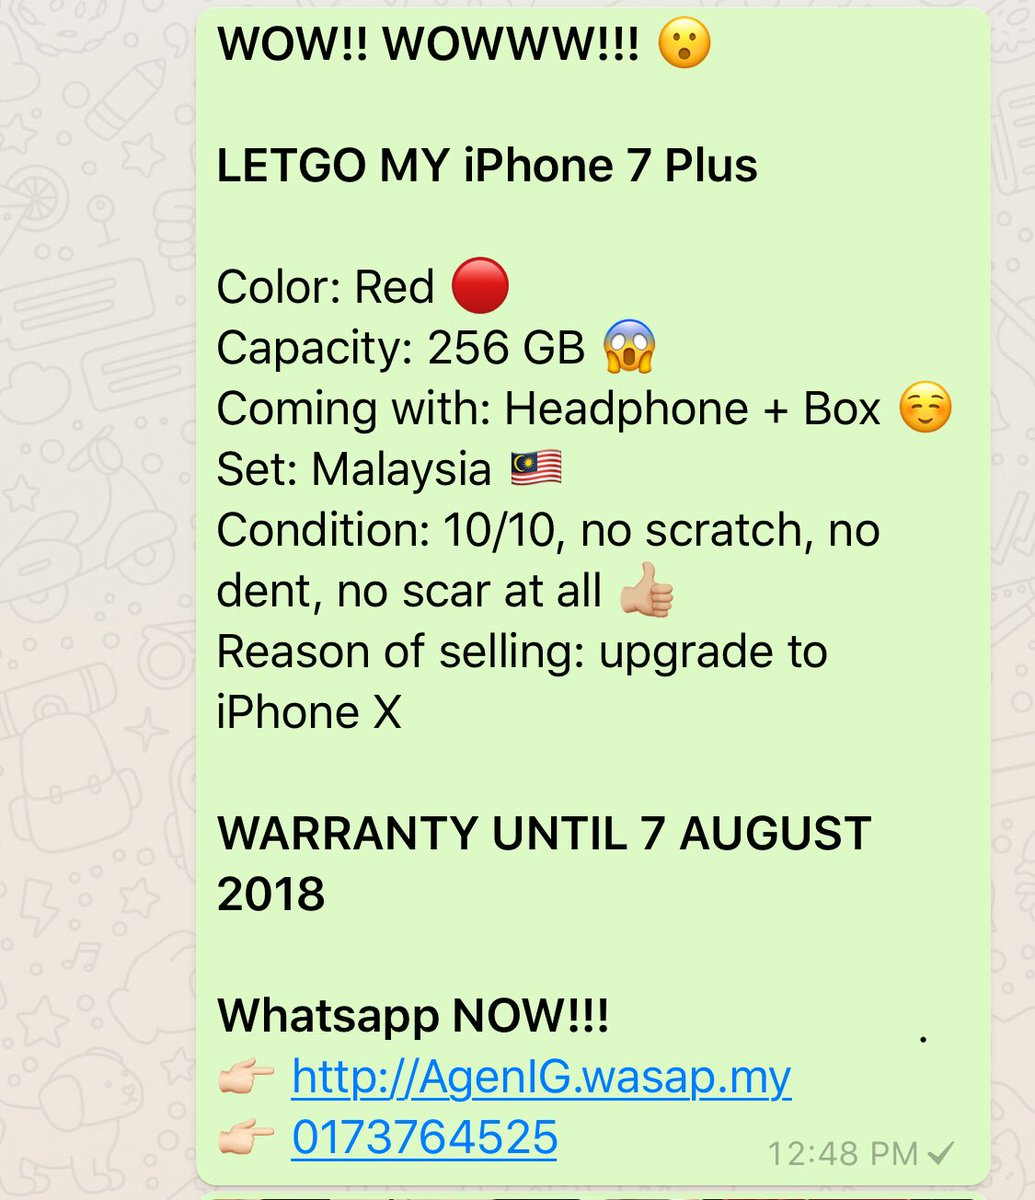 LELONG iPhone 7 Plus dok ada warranty lagi sampai August 2018 wehhhhhh!!!!